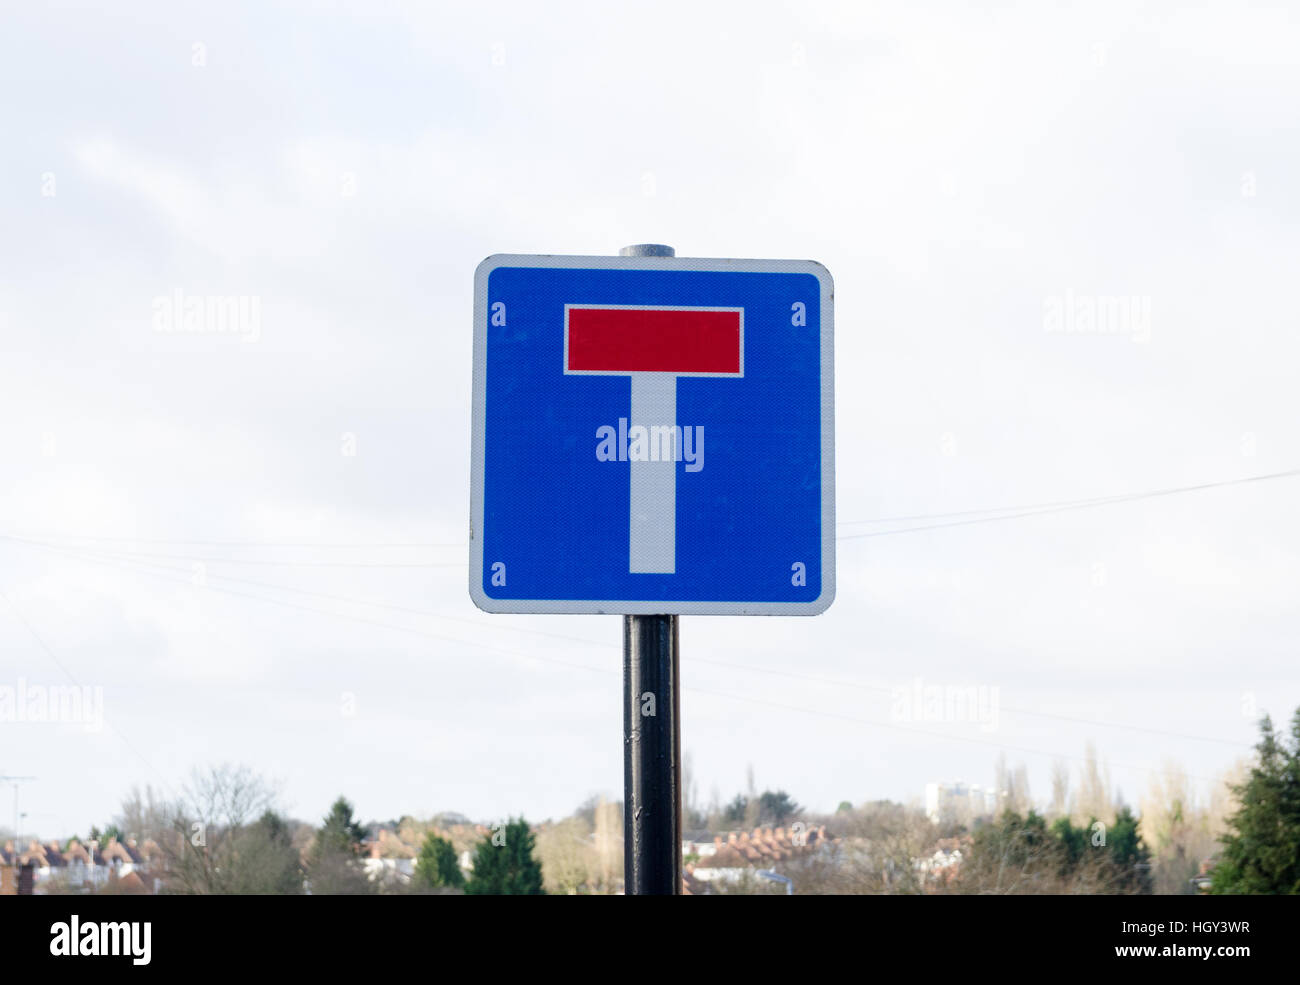 Traffic sign warning that road is dead end - Stock Image